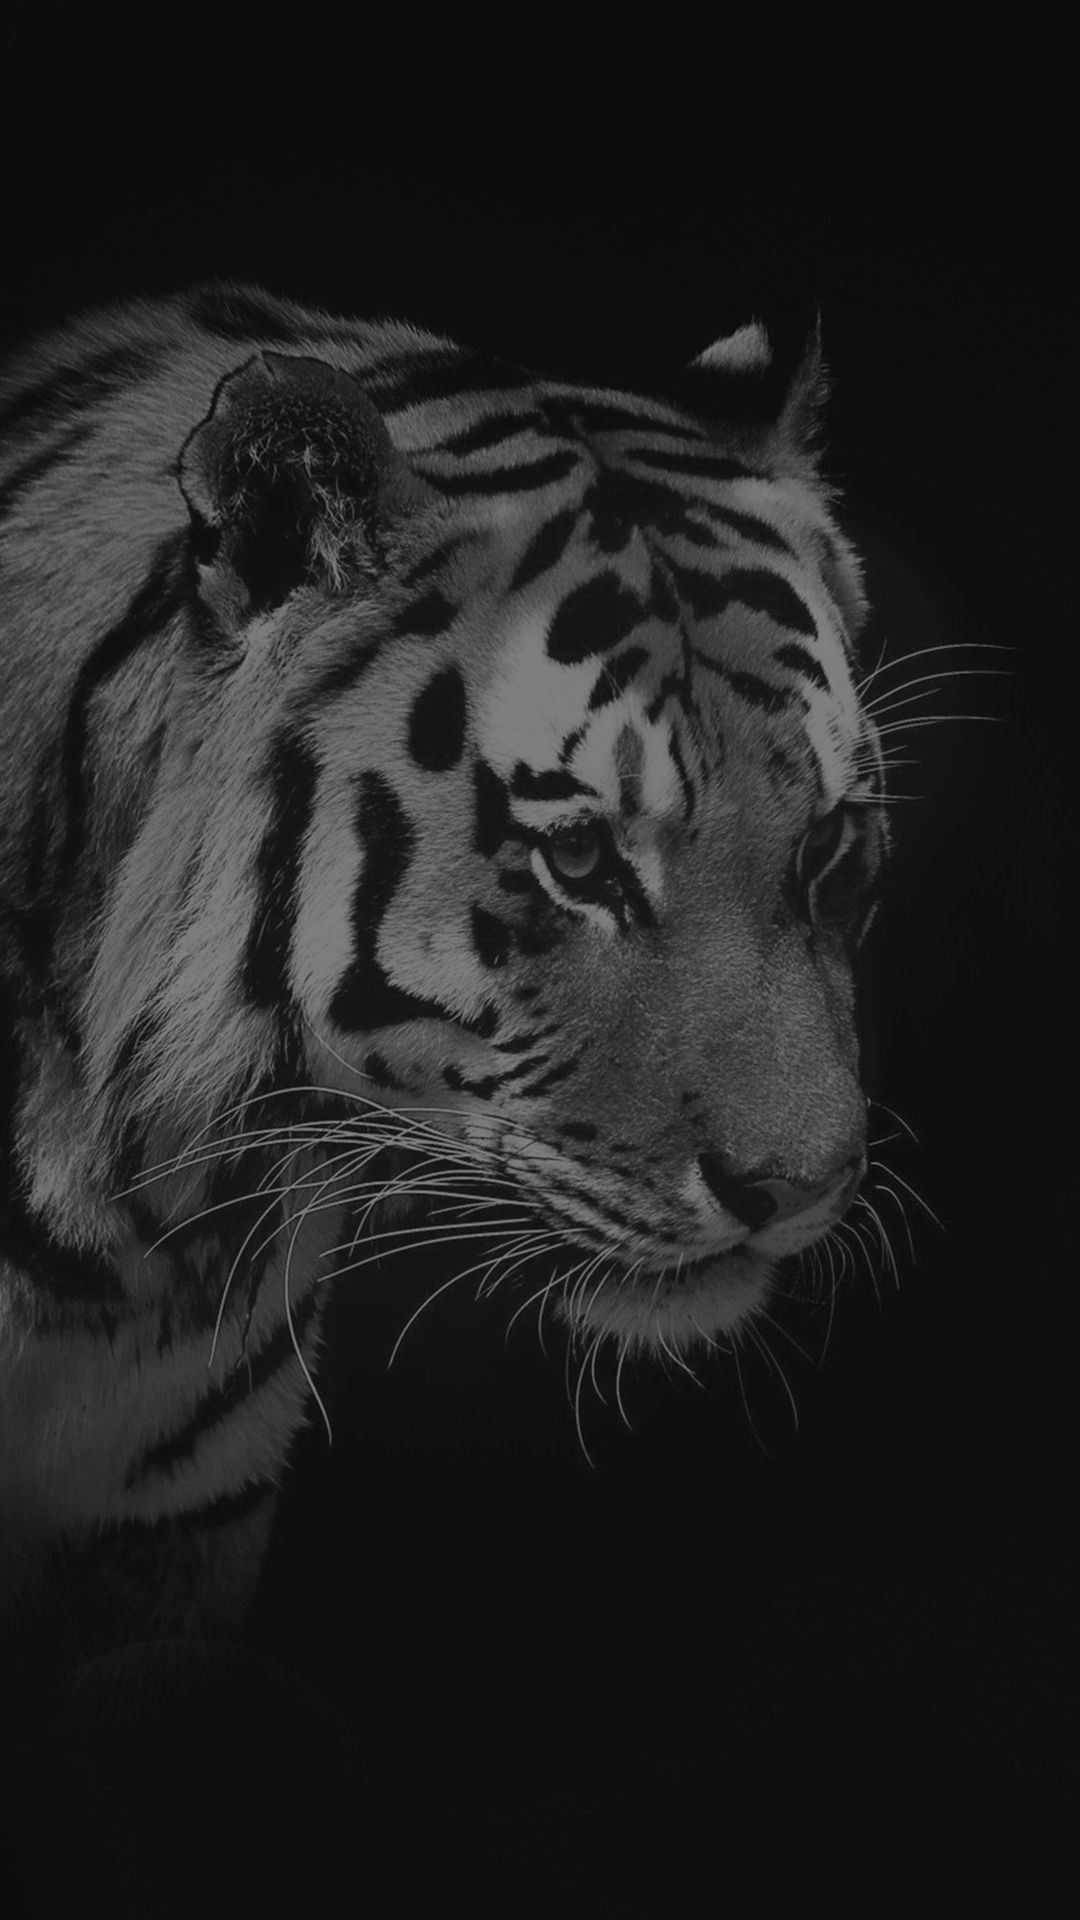 Tiger Dark Animal Love Nature Iphone 6 Plus Wallpaper In